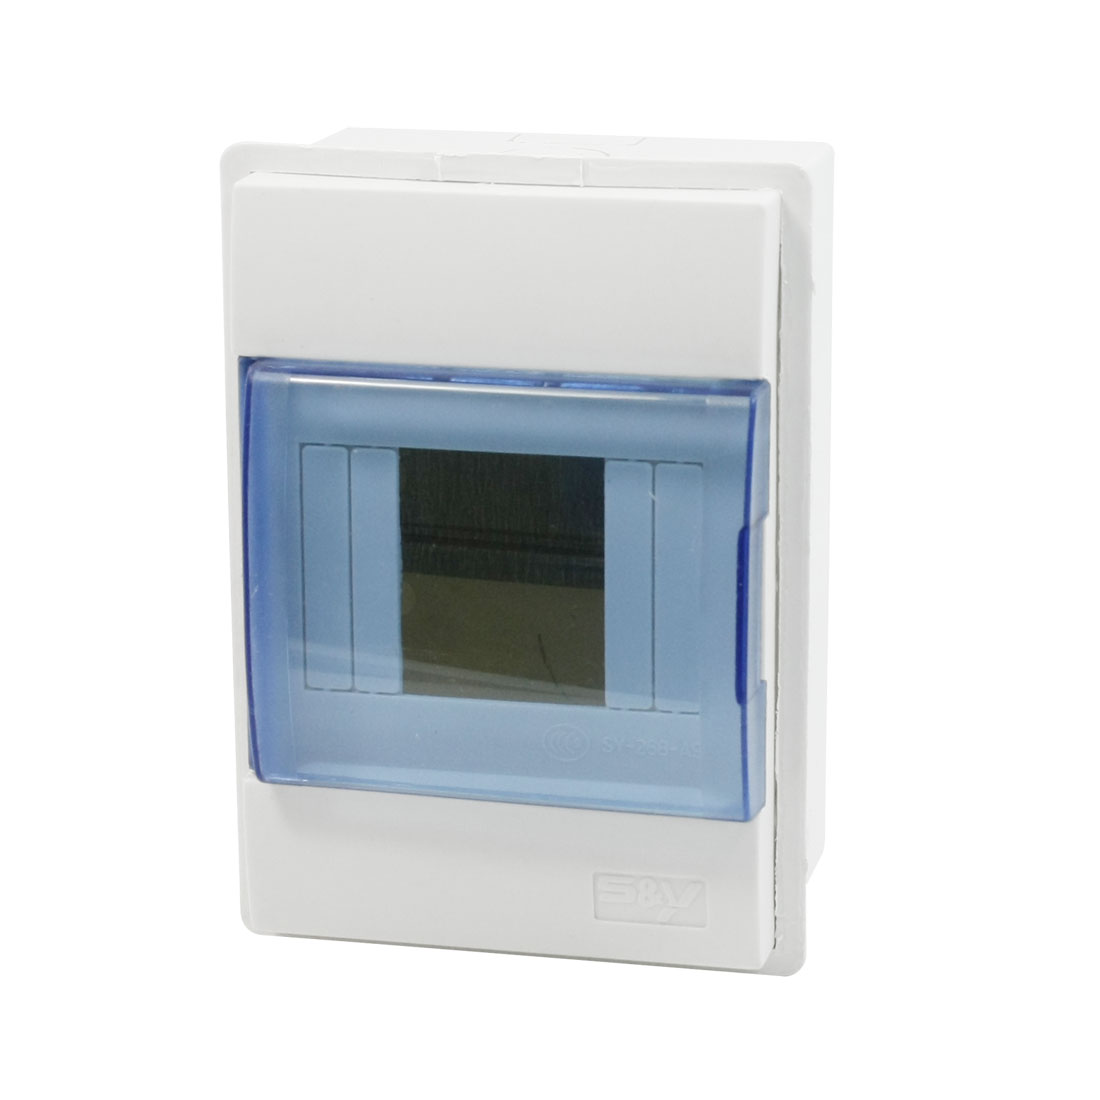 White Plastic Housing Cuboid Protective 2 Way Power Distribution Box